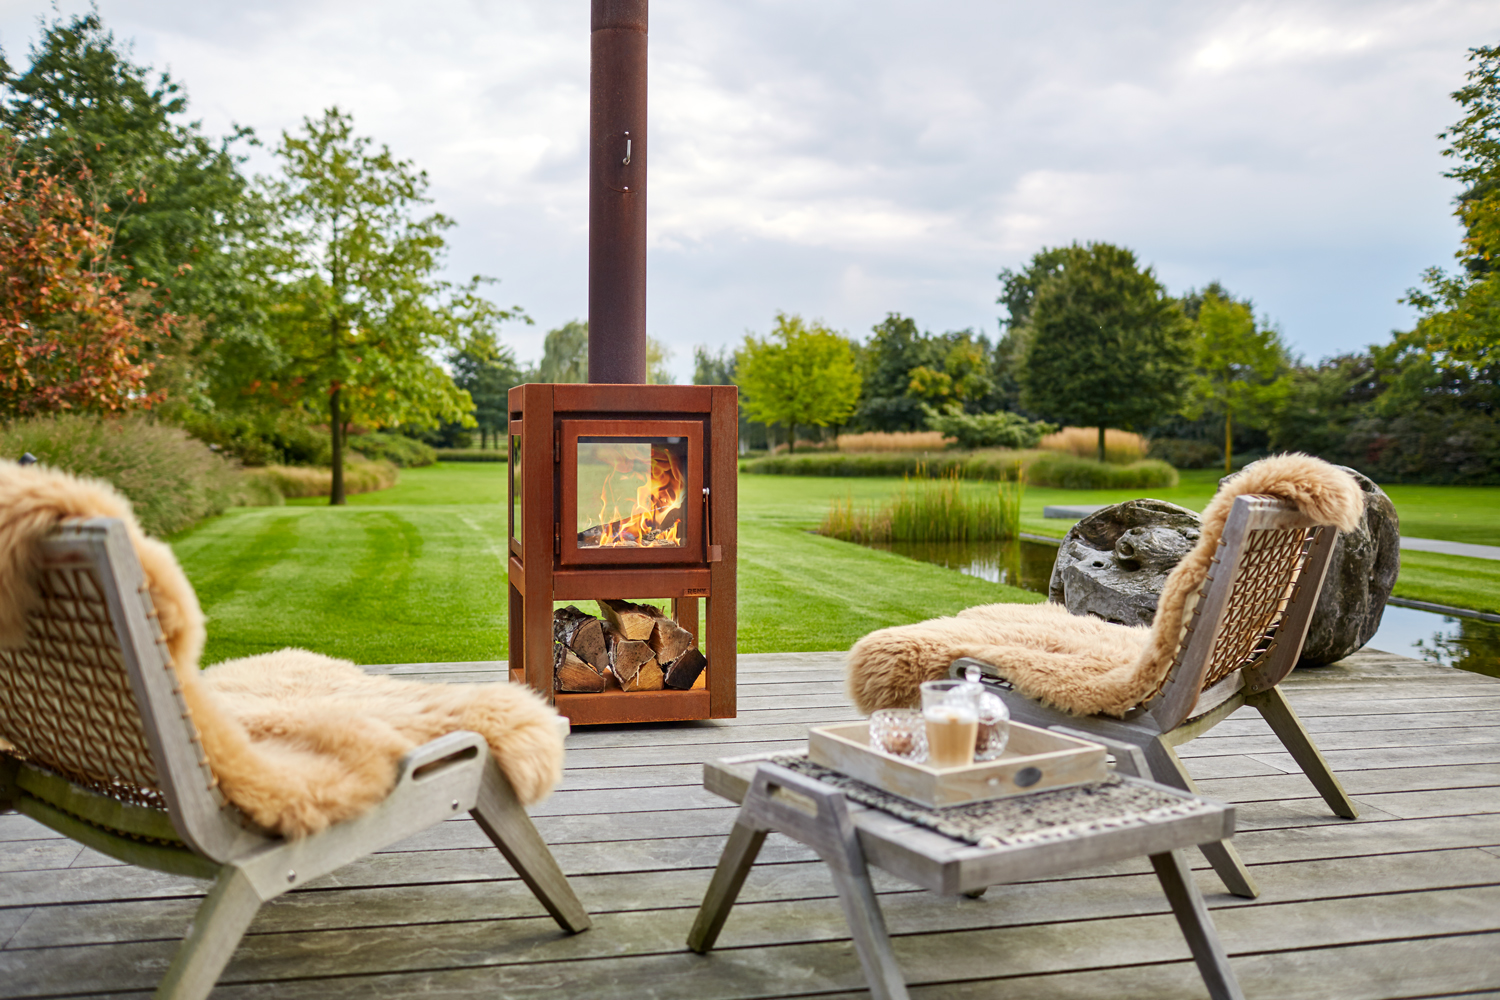 These CorTen steel fireplaces are perfect for year-round entertaining